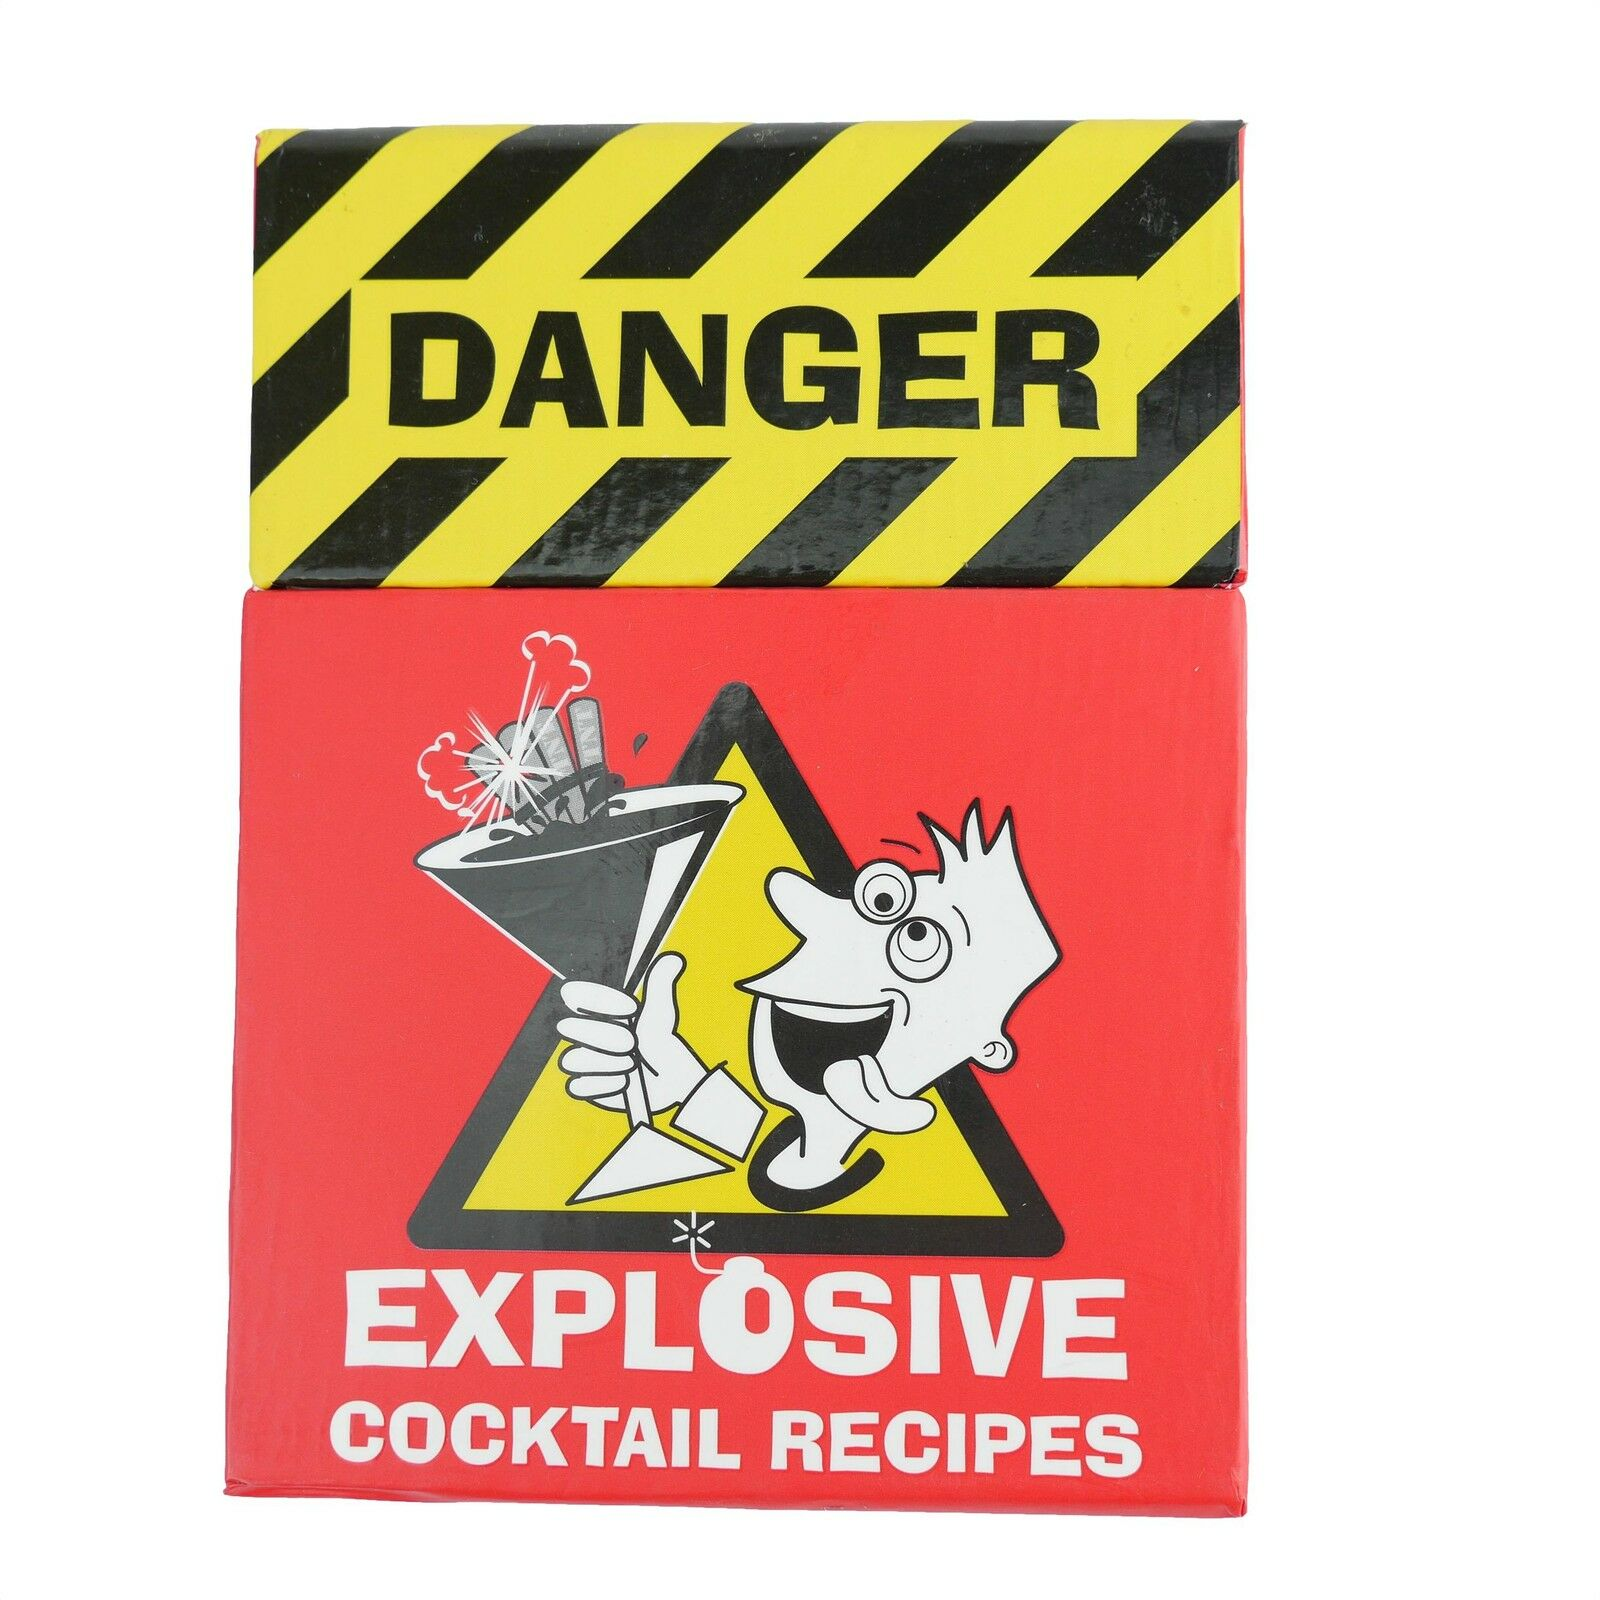 DANGEROUS COCKTAIL RECIPES - Kitchen Bar Party Man Cave Hen's Party Gift